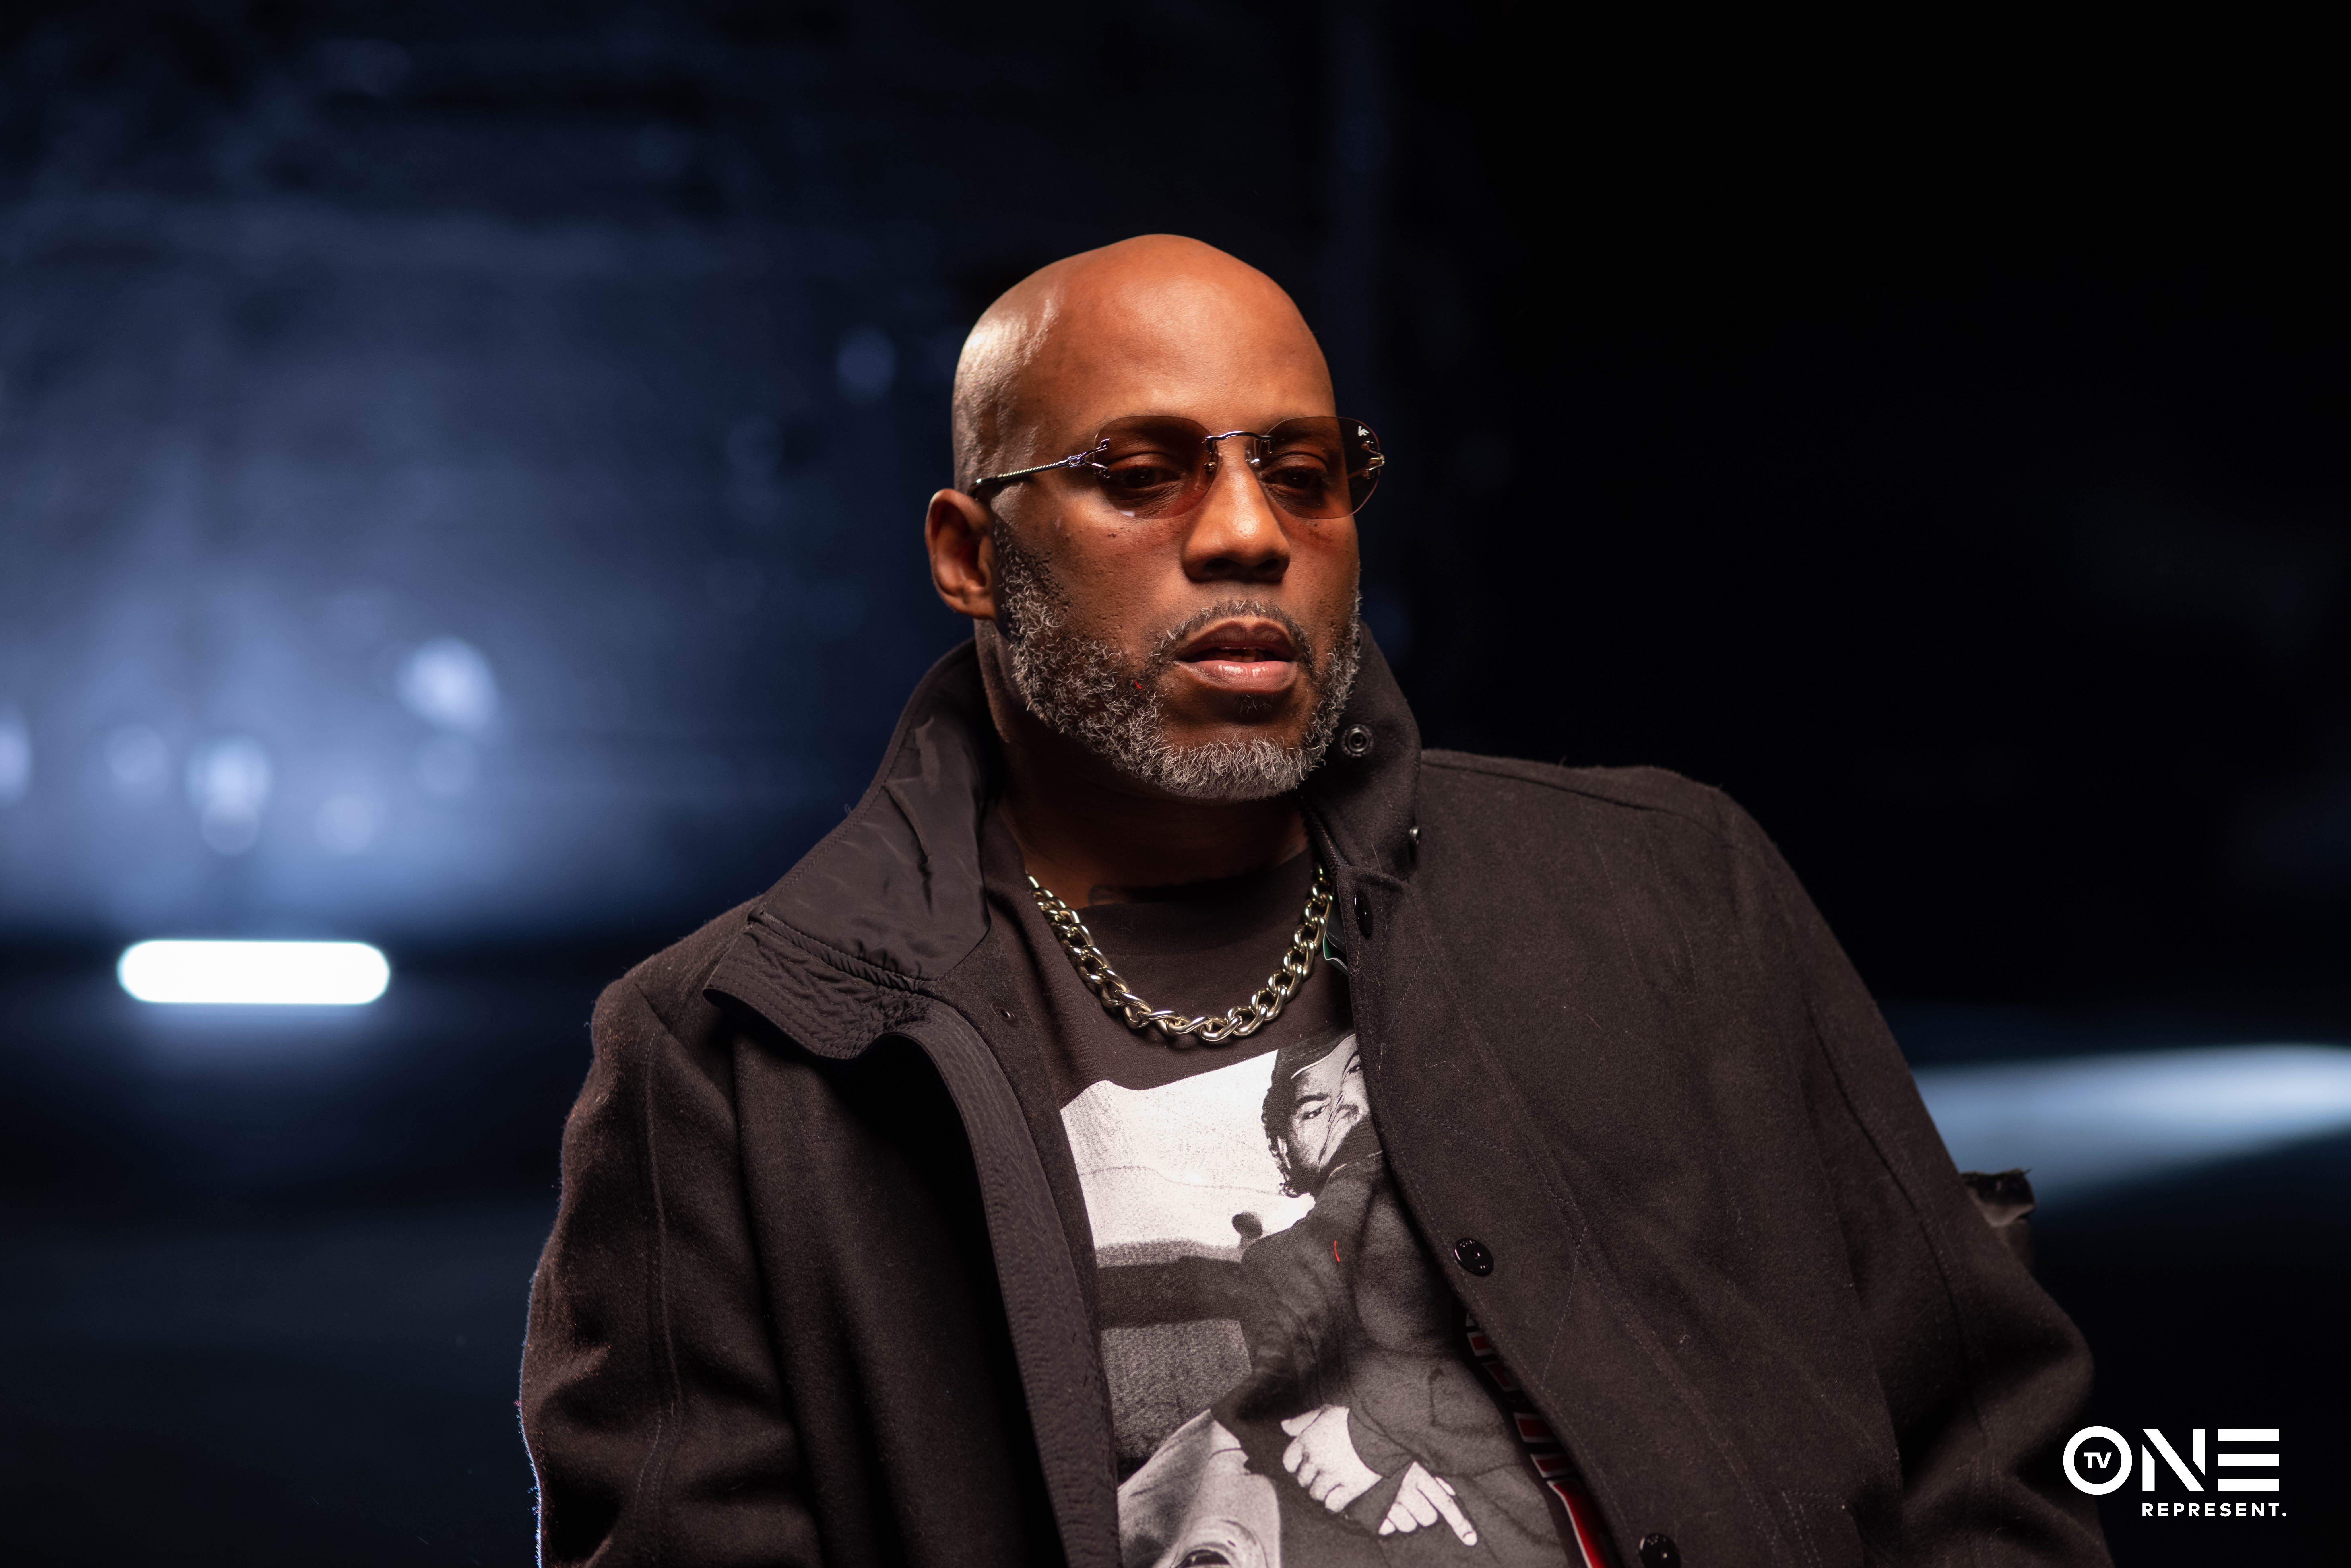 DMX To Be Honored With A Special Tribute at the 2021 BET Awards